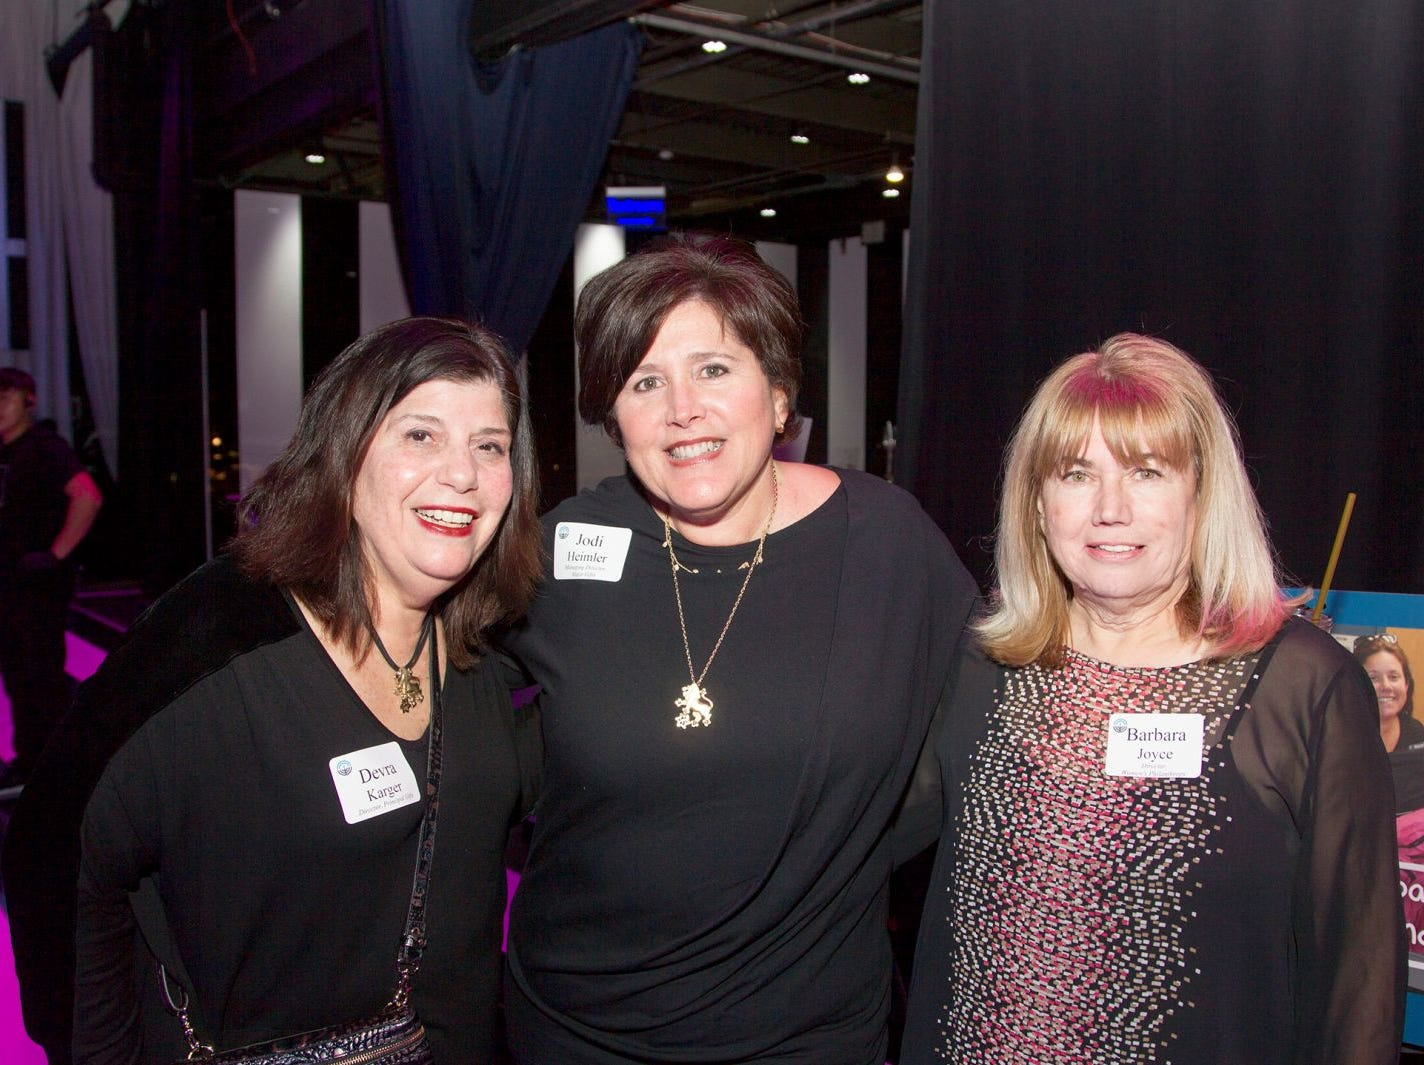 Devra Karger, Jodi Heimler, Barbara Joyce. Jewish Federation of Northern New Jersey held its first Girl's Night Out dance party at Space in Englewood. 01/24/2019